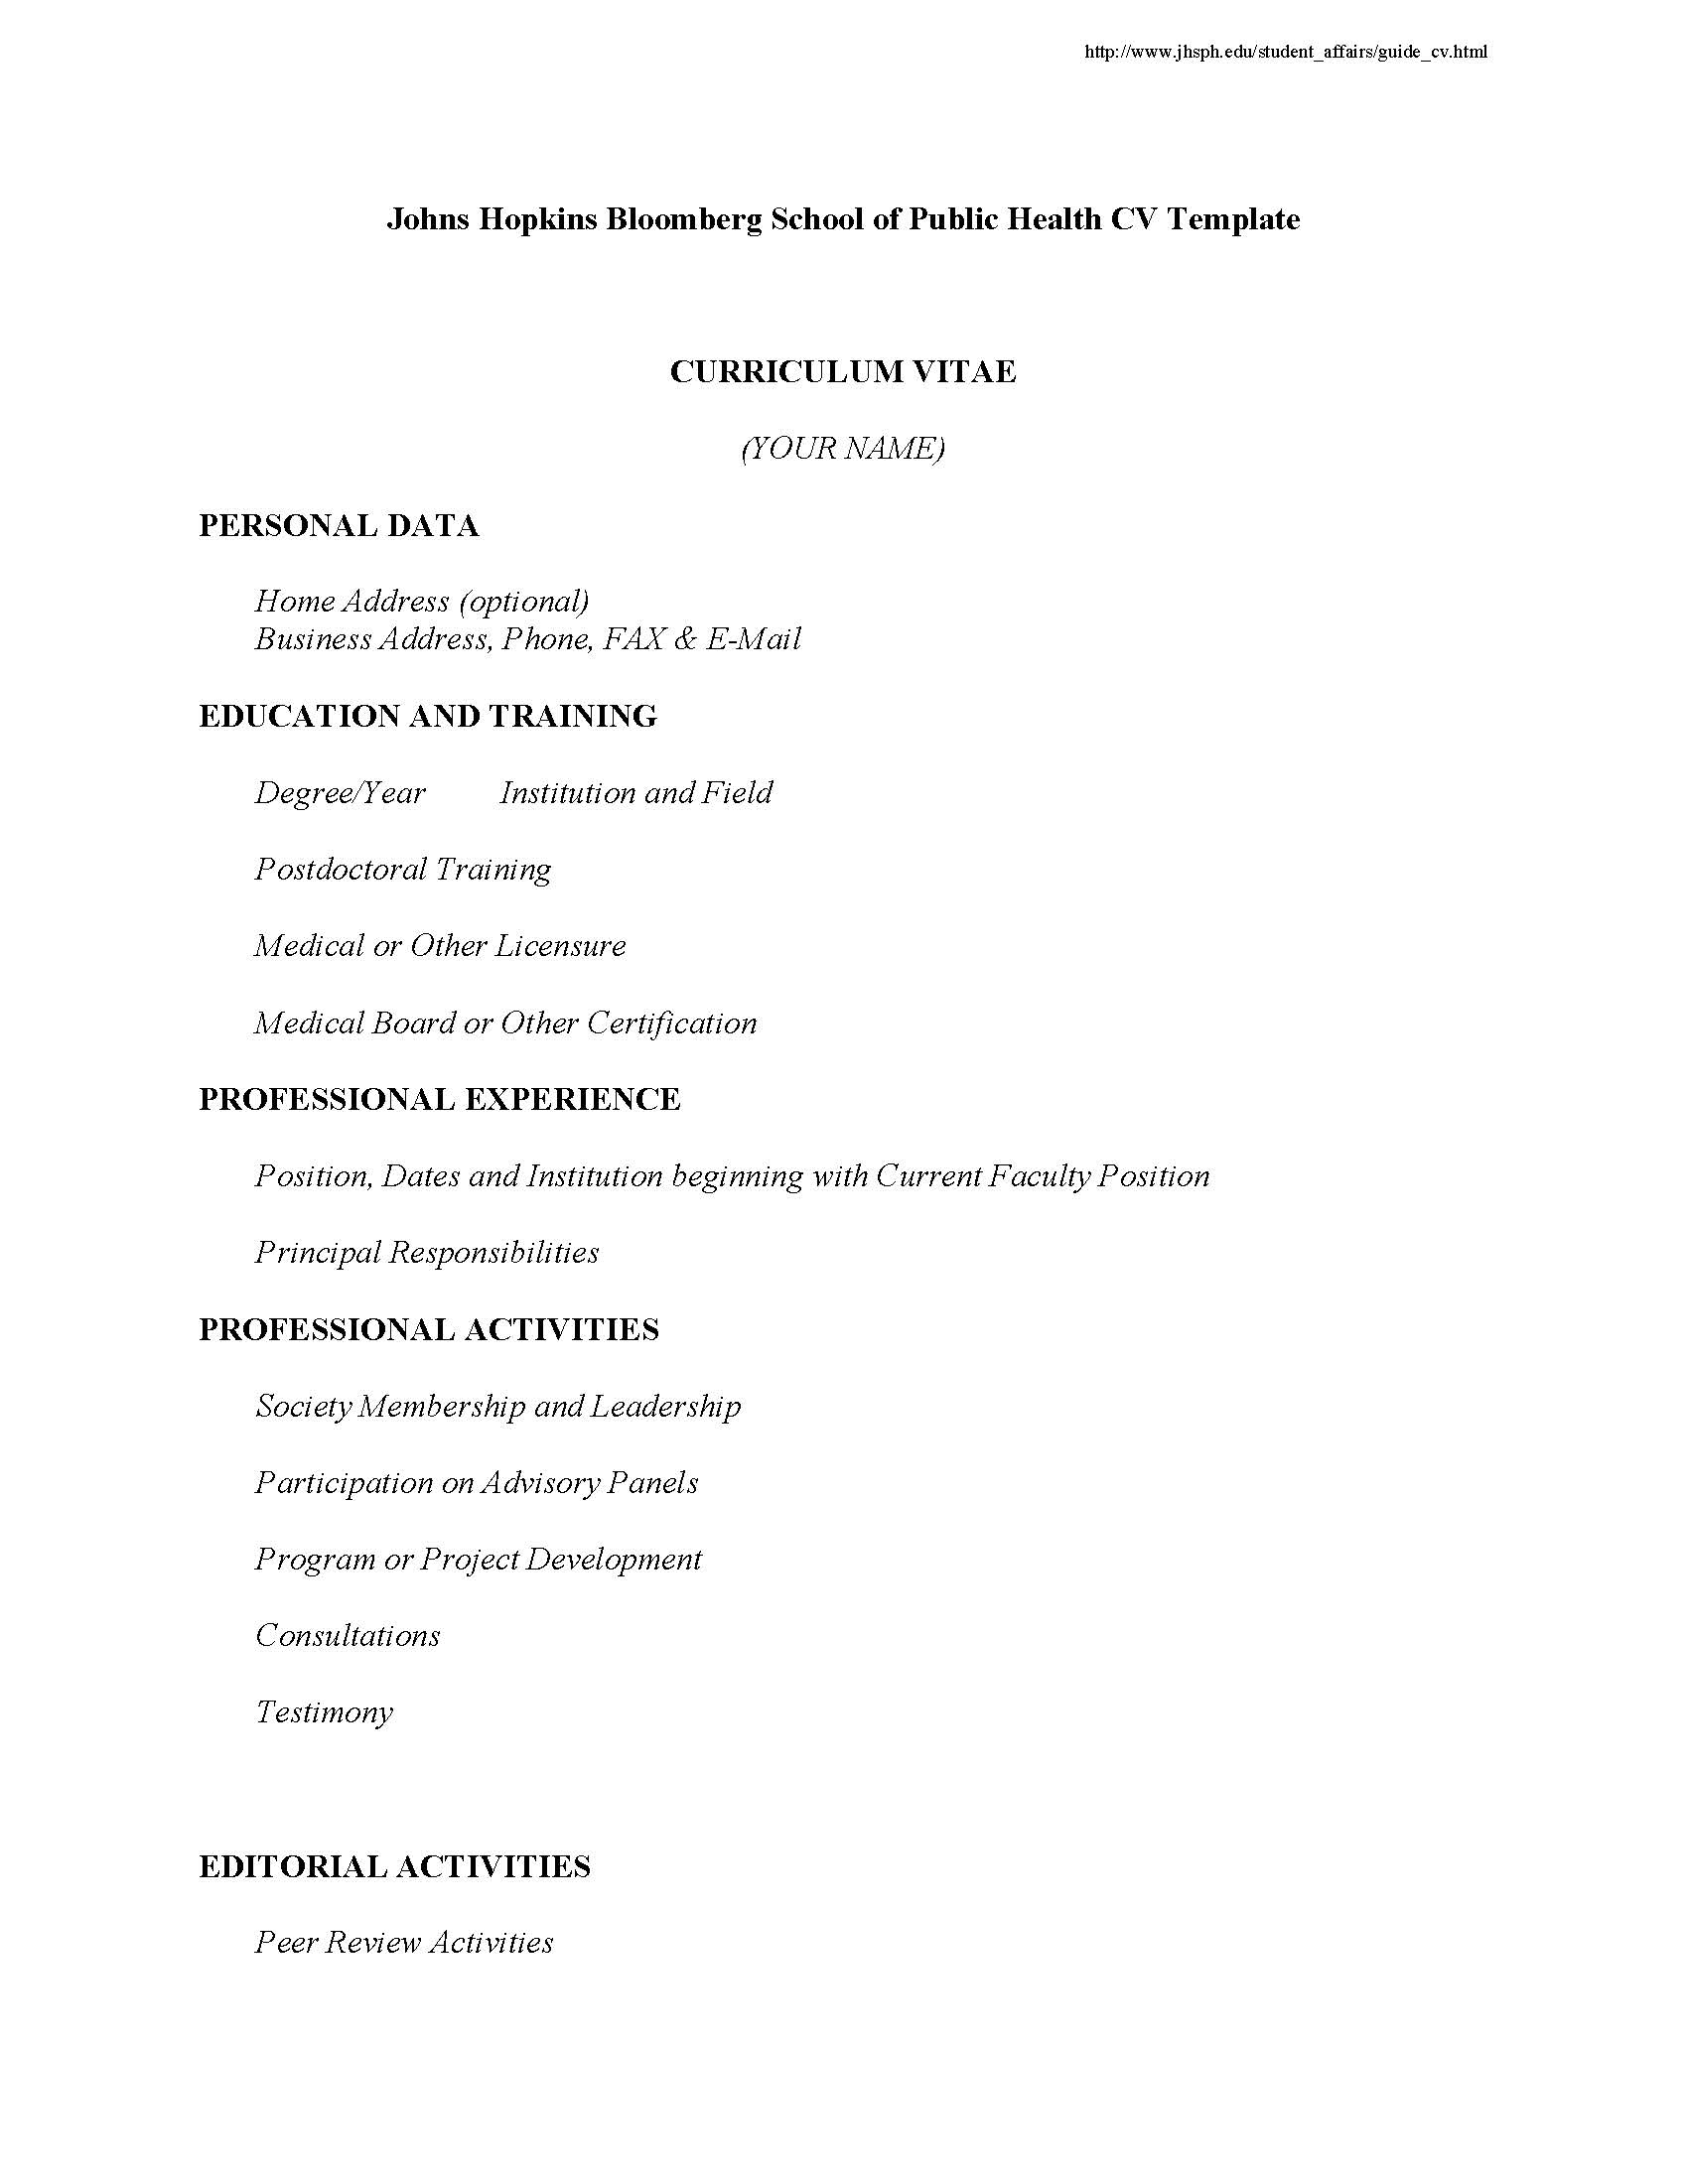 JHSPH CV Template  Certification On Resume Example